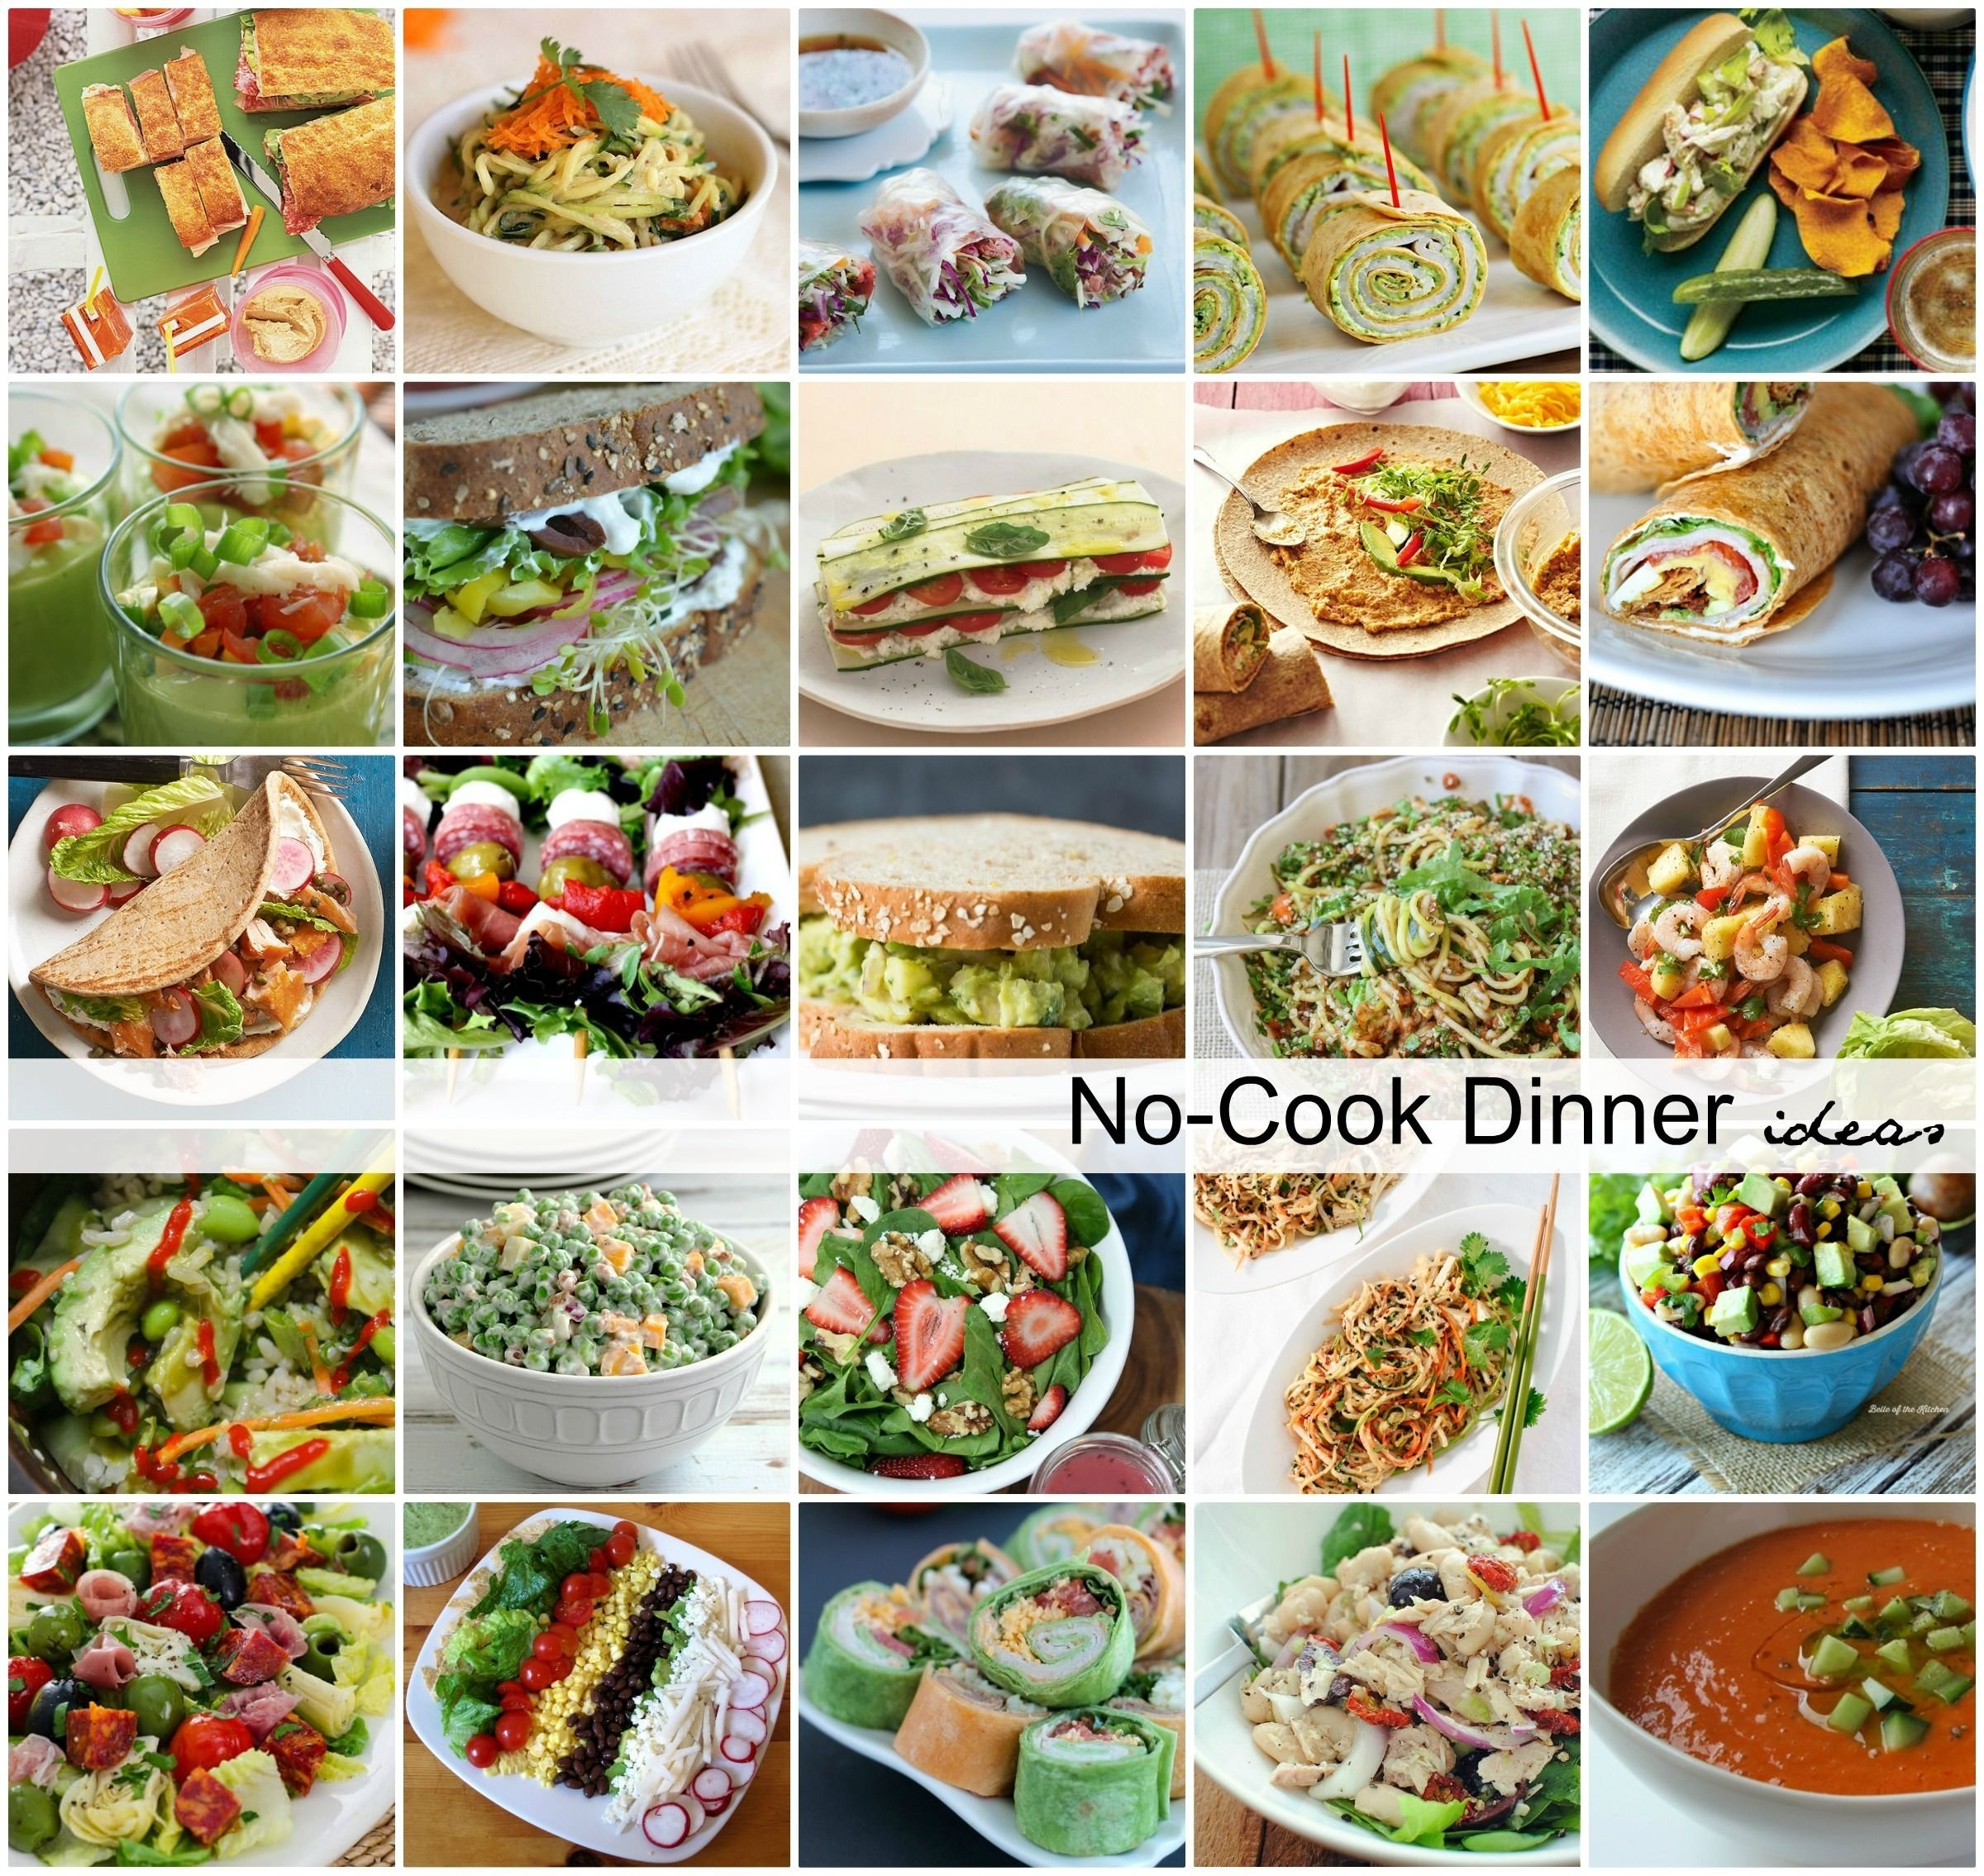 10 Ideal Ideas To Cook For Dinner no cook dinner ideas 2021